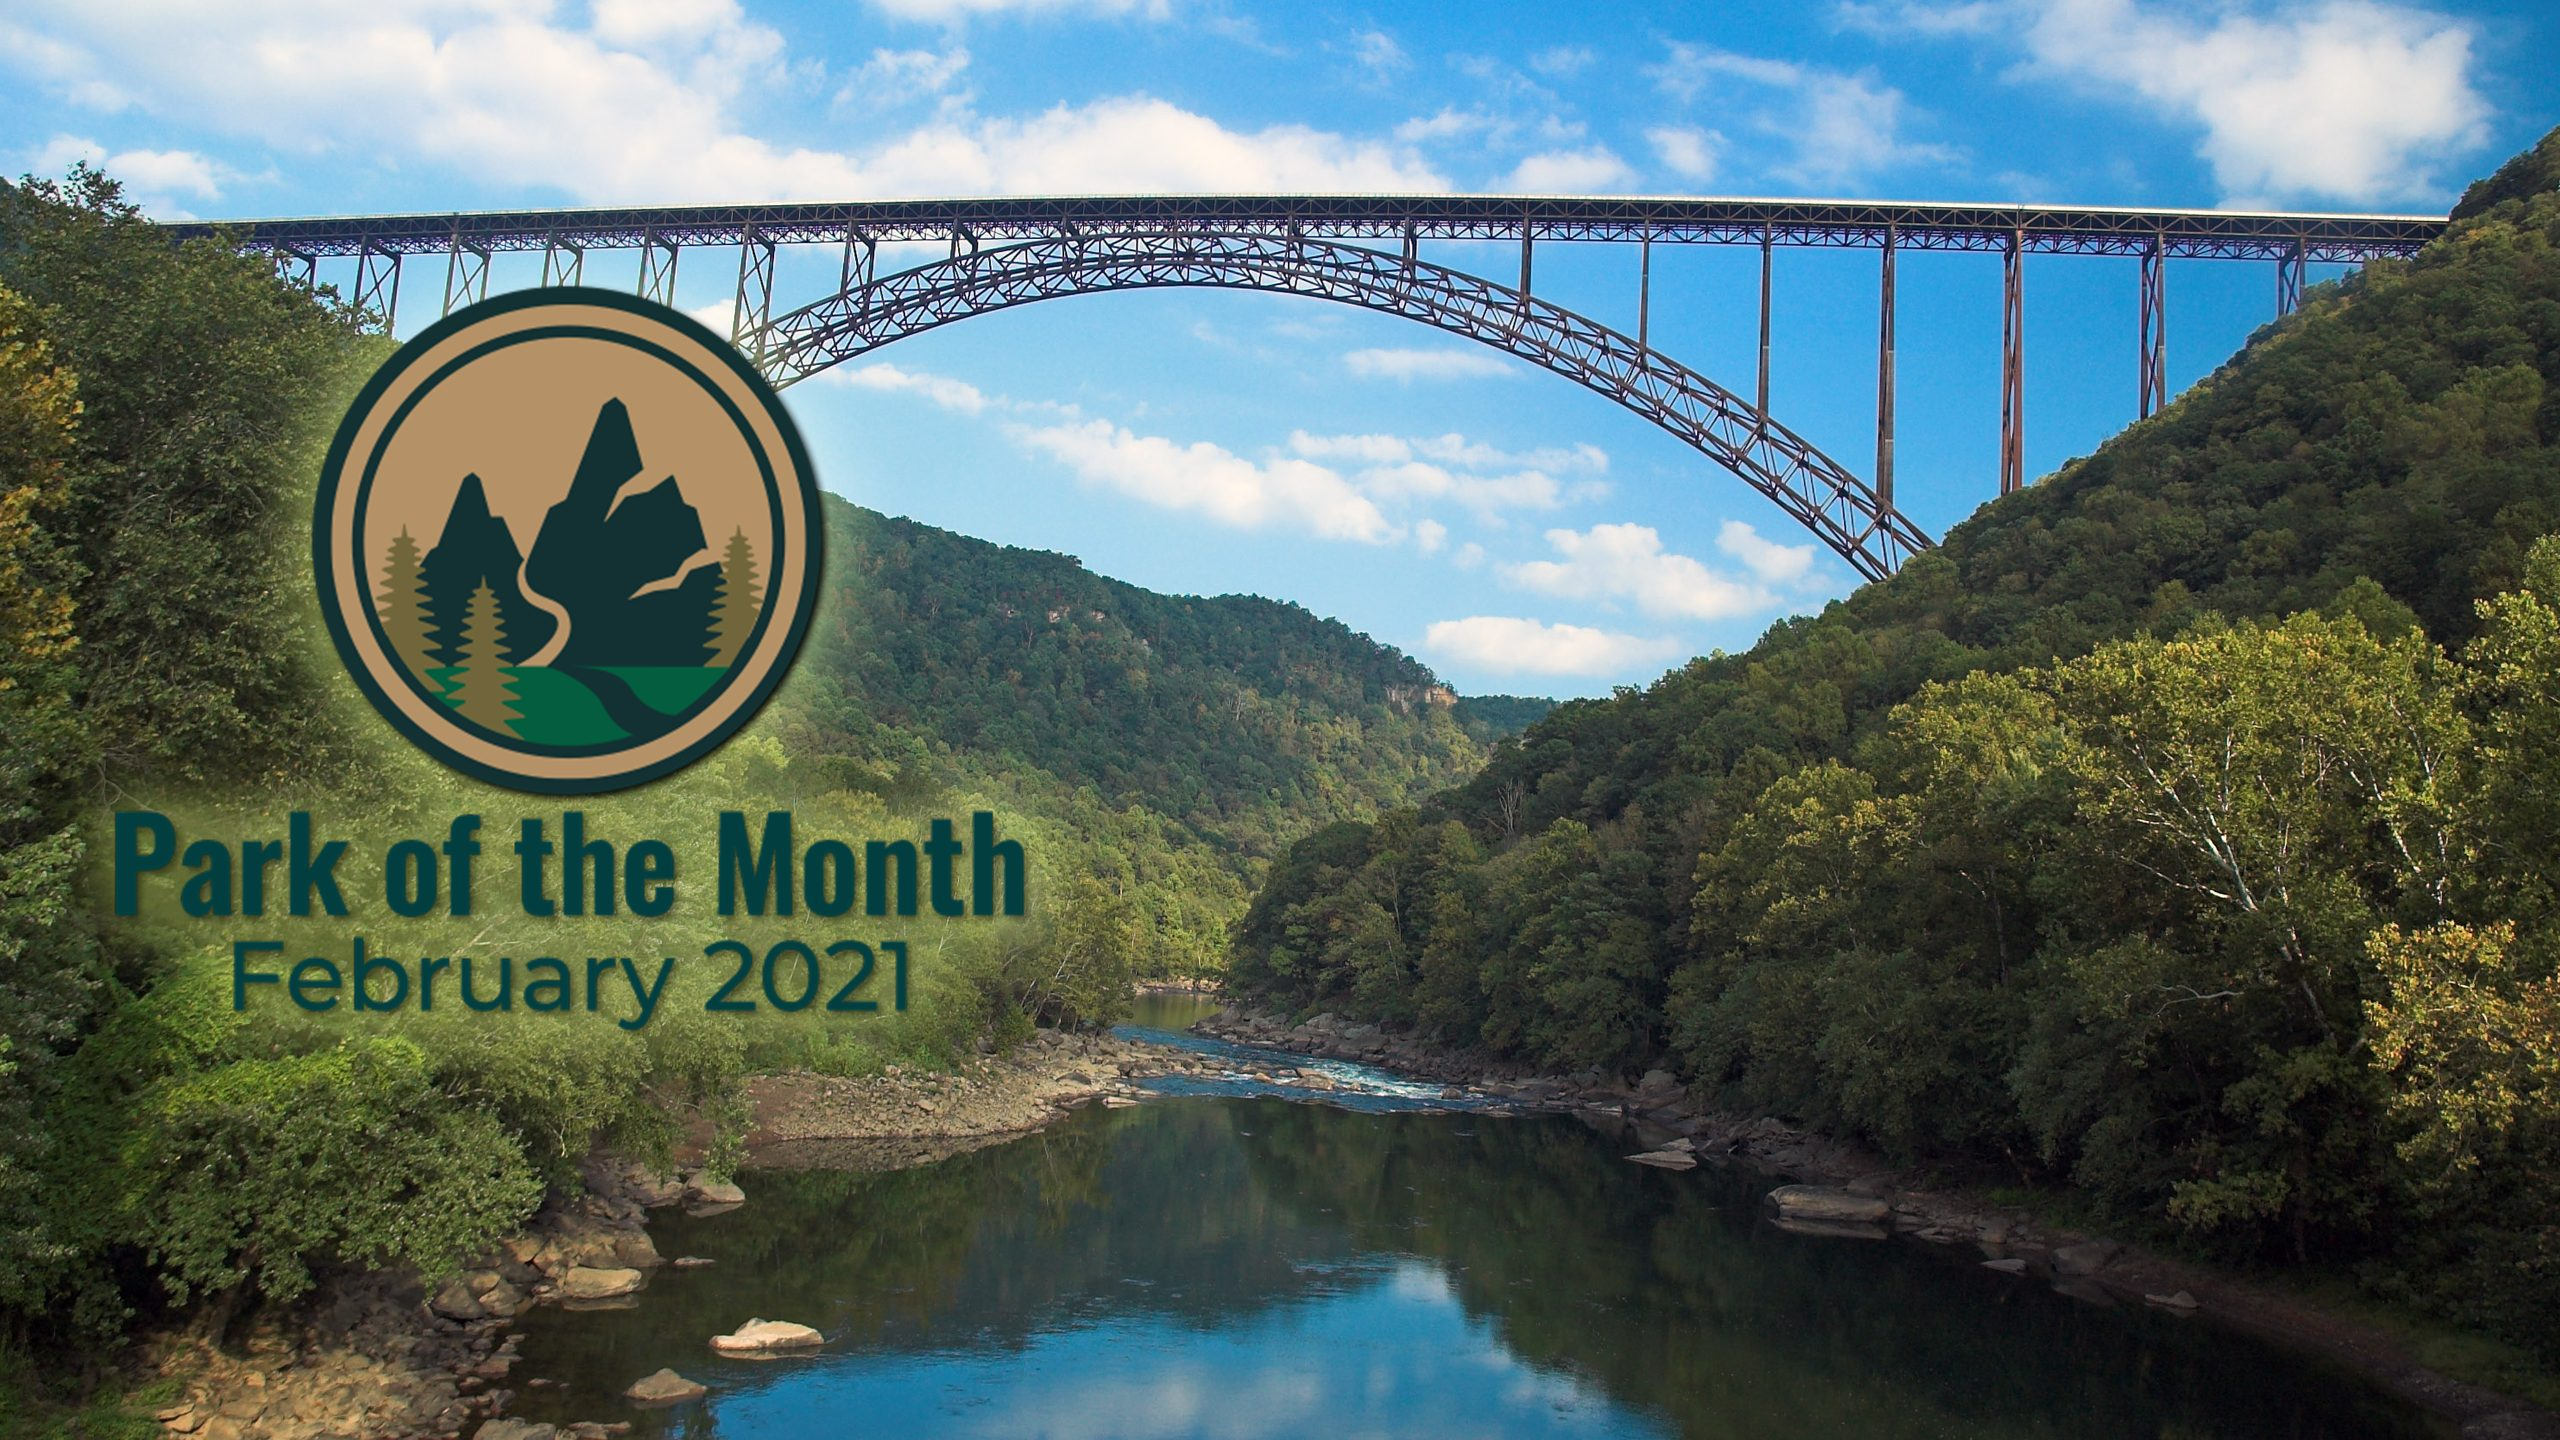 The New River Gorge Bridge spanning the New River and the gorge